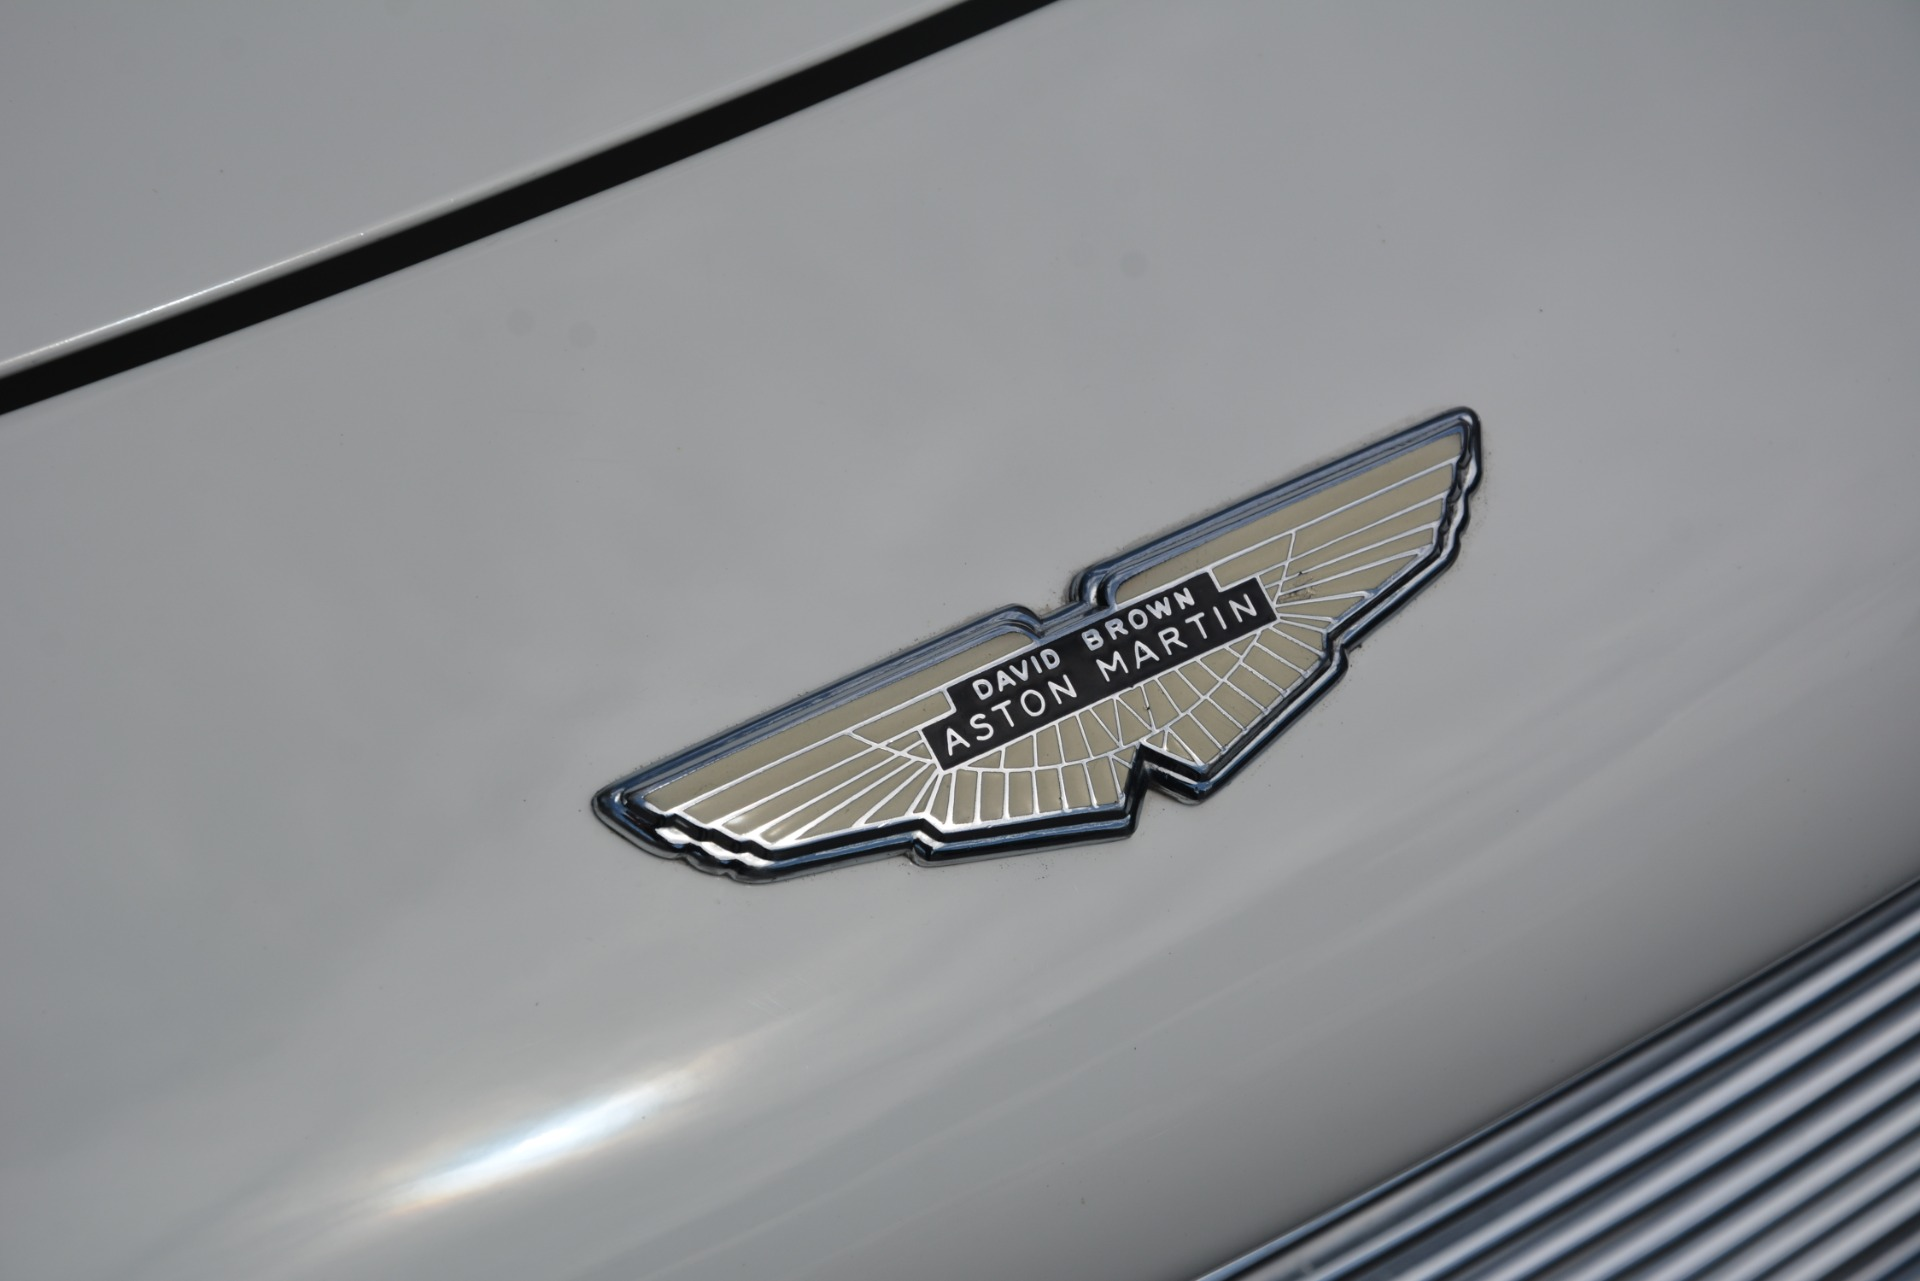 Used 1961 Aston Martin DB4 Series IV Coupe For Sale In Westport, CT 3186_p18